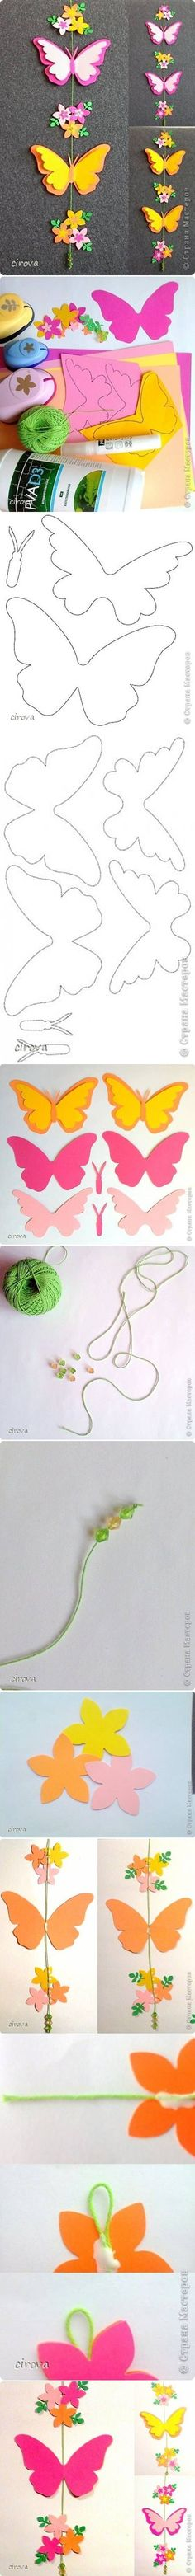 DIY Paper Butterfly Mobile DIY Paper Butterfly Mobile